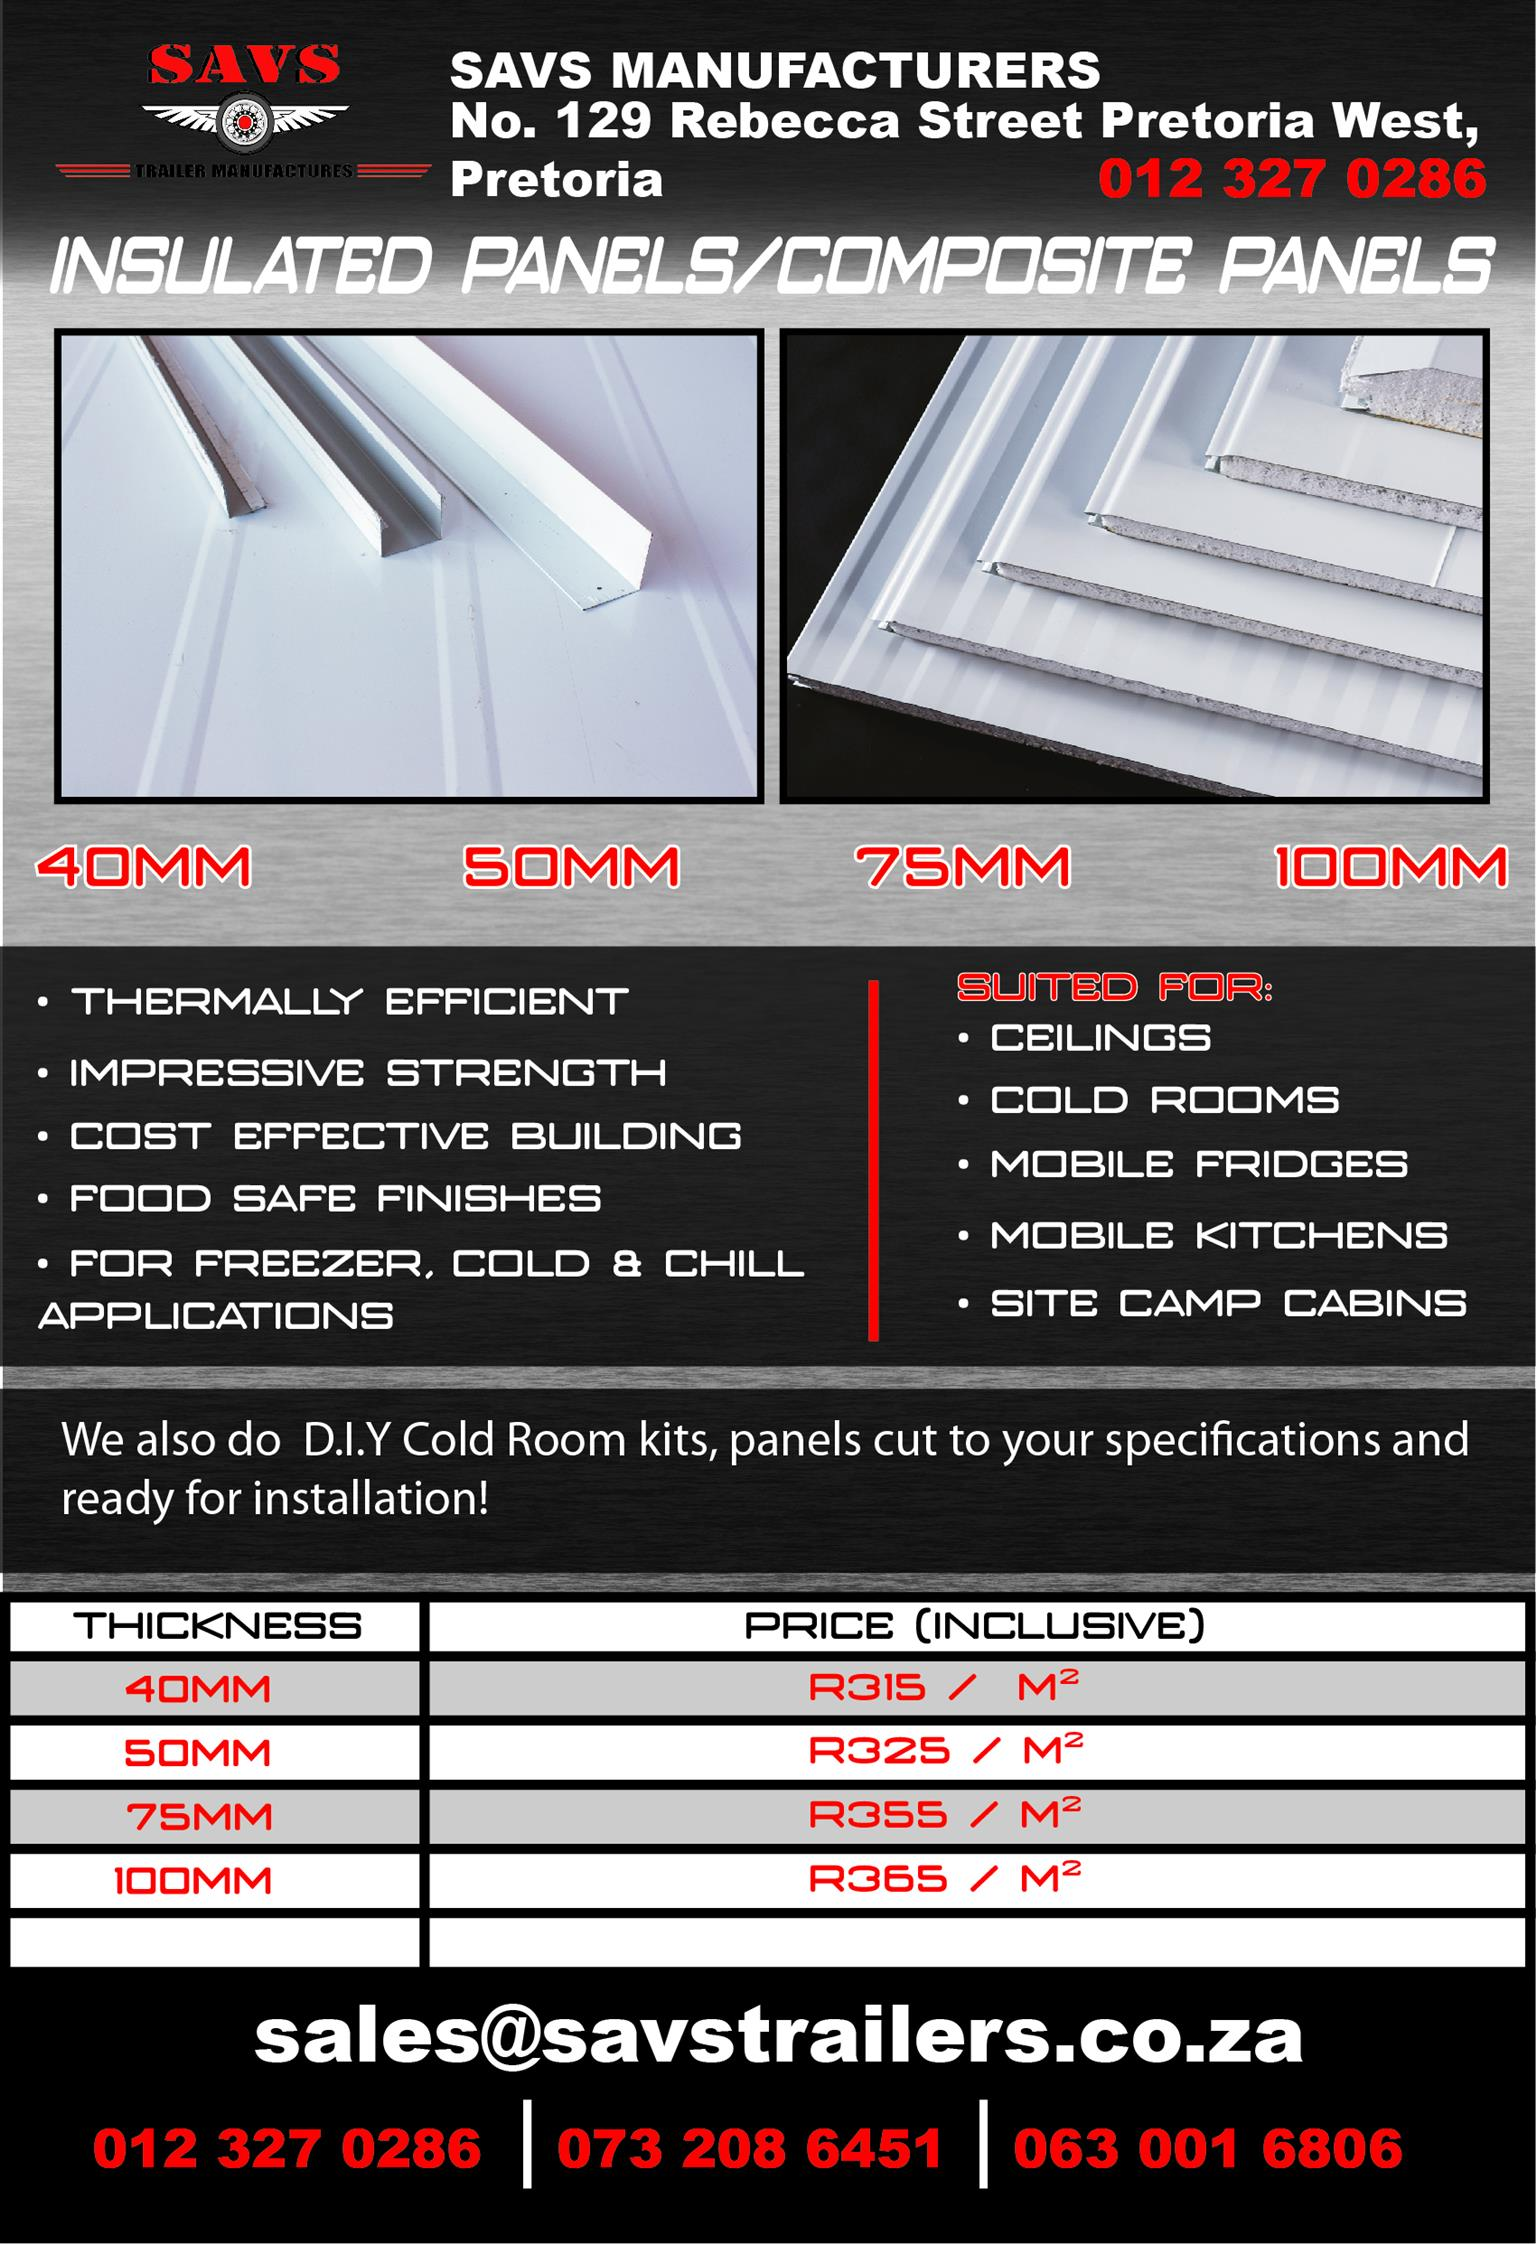 Insulates Panels / Composite Panels